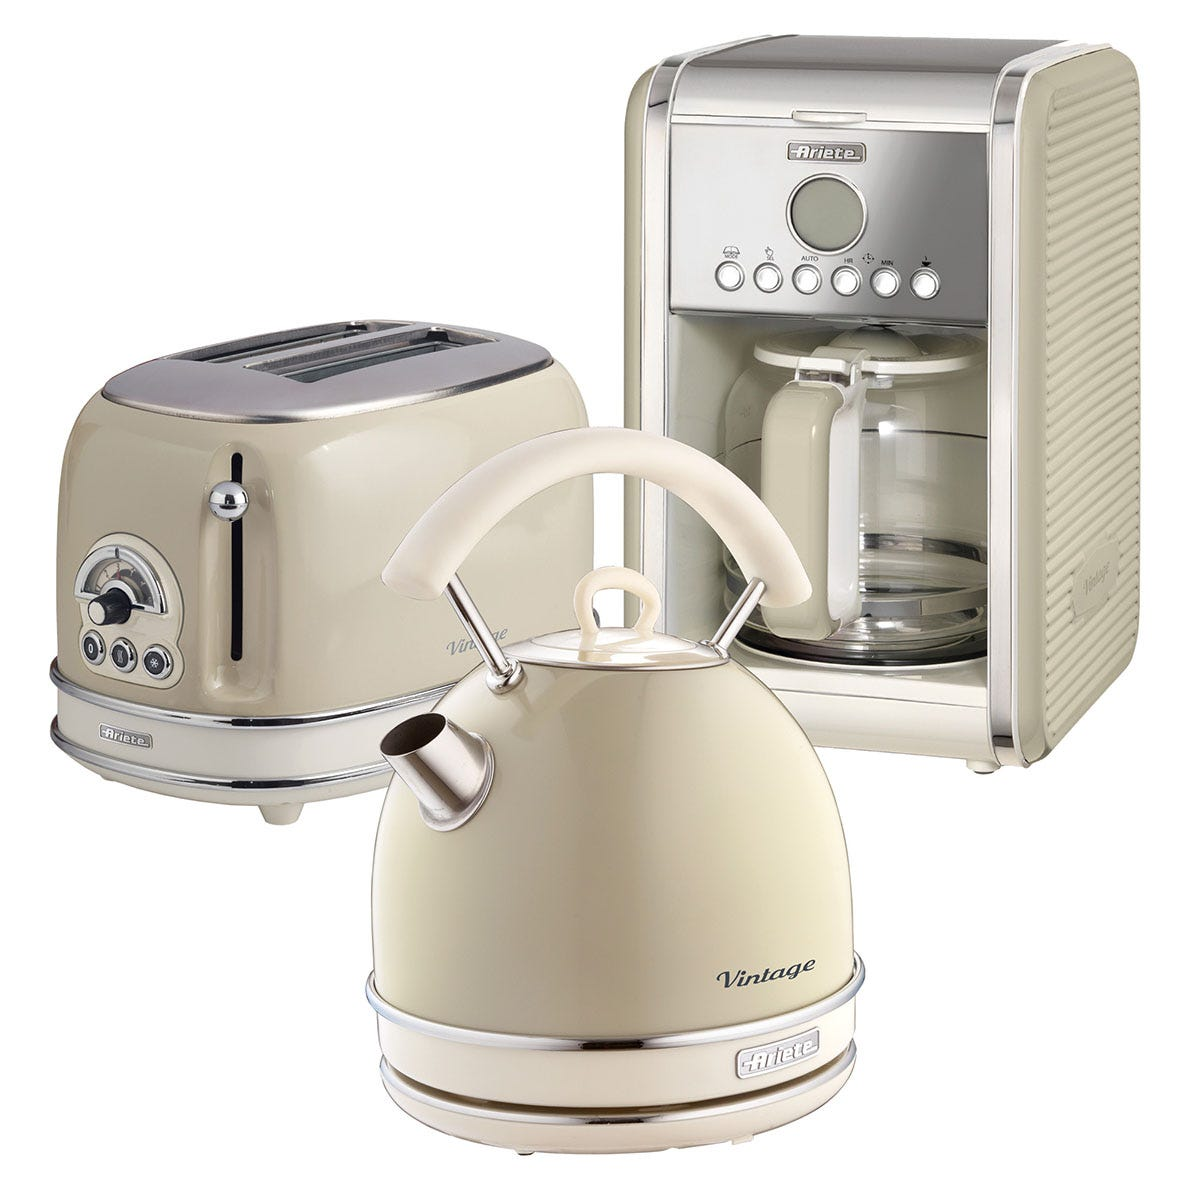 Ariete ARPK13 Vintage 2-Slice Toaster, 1.7L Dome Kettle, and 12-Cup Filter Coffee Maker - Cream